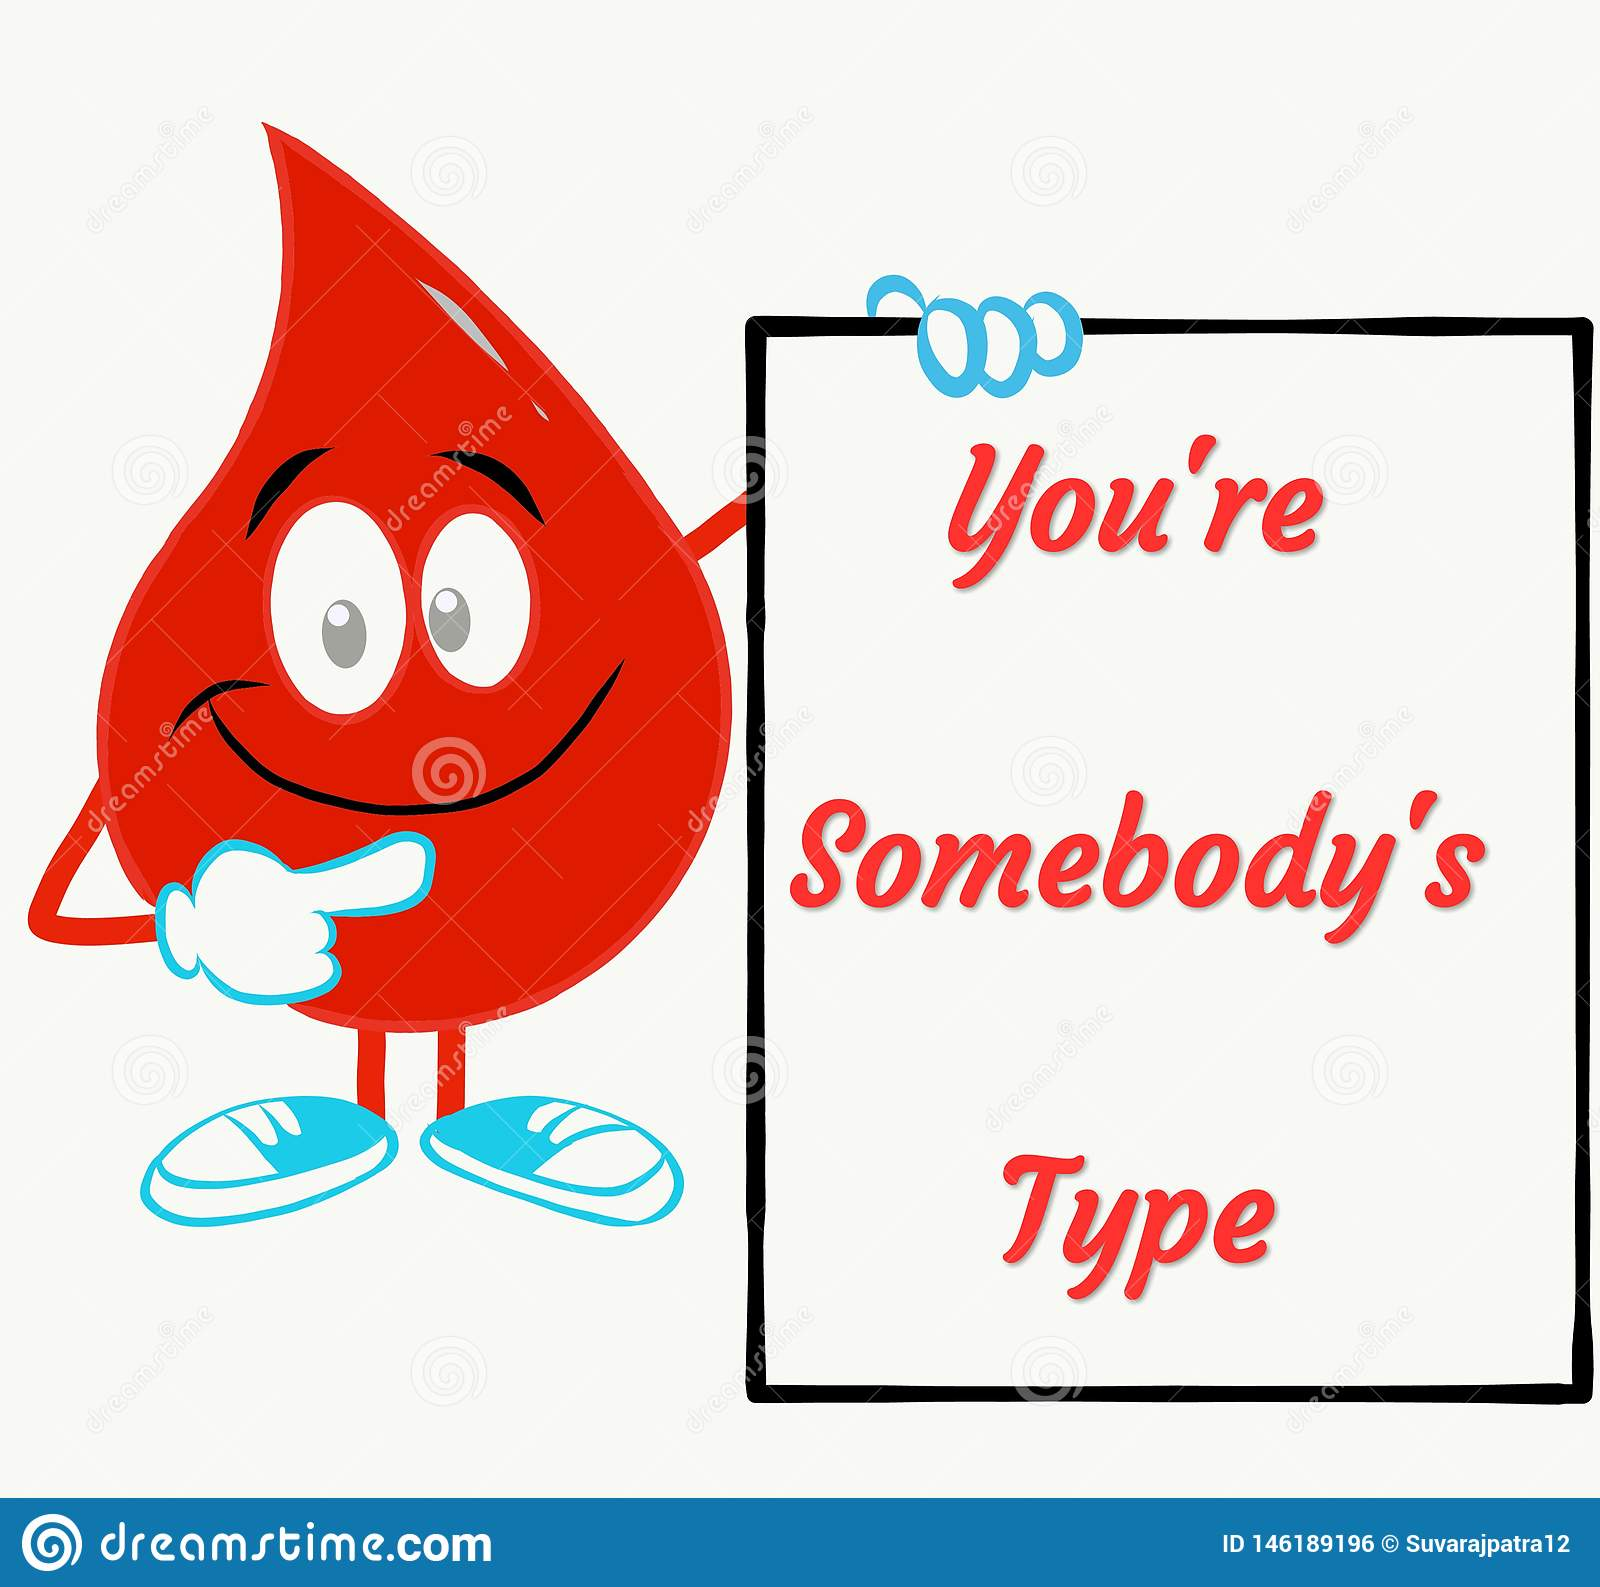 Motivational text for blood donation camp